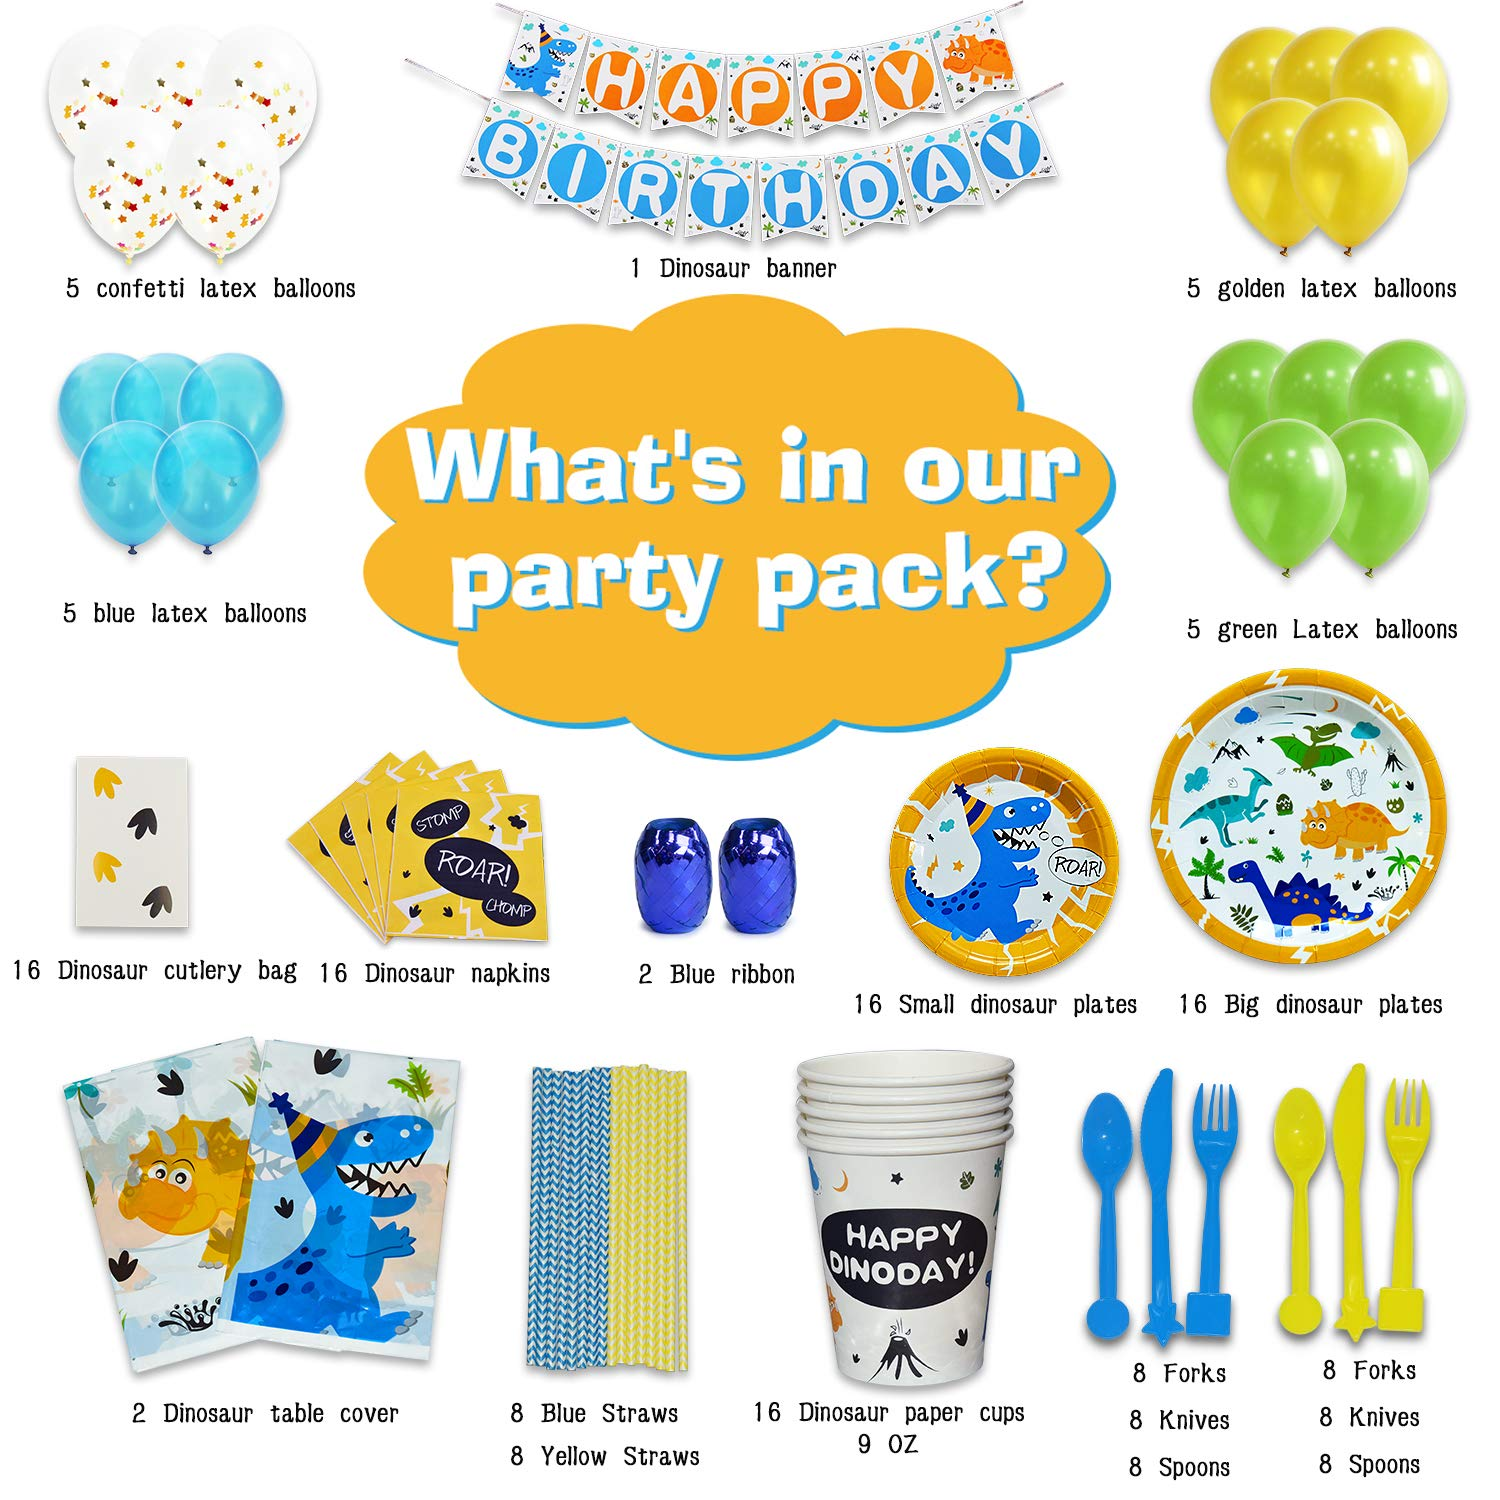 WERNNSAI Dinosaur Party Supplies Set - Dinosaur Themed Party Decoration for Boys Kids Birthday Cutlery Bag Table Cover Plates Cups Napkins Straws Utensils Banner & Balloons Serves 16 Guests 169 PCS by WERNNSAI (Image #2)